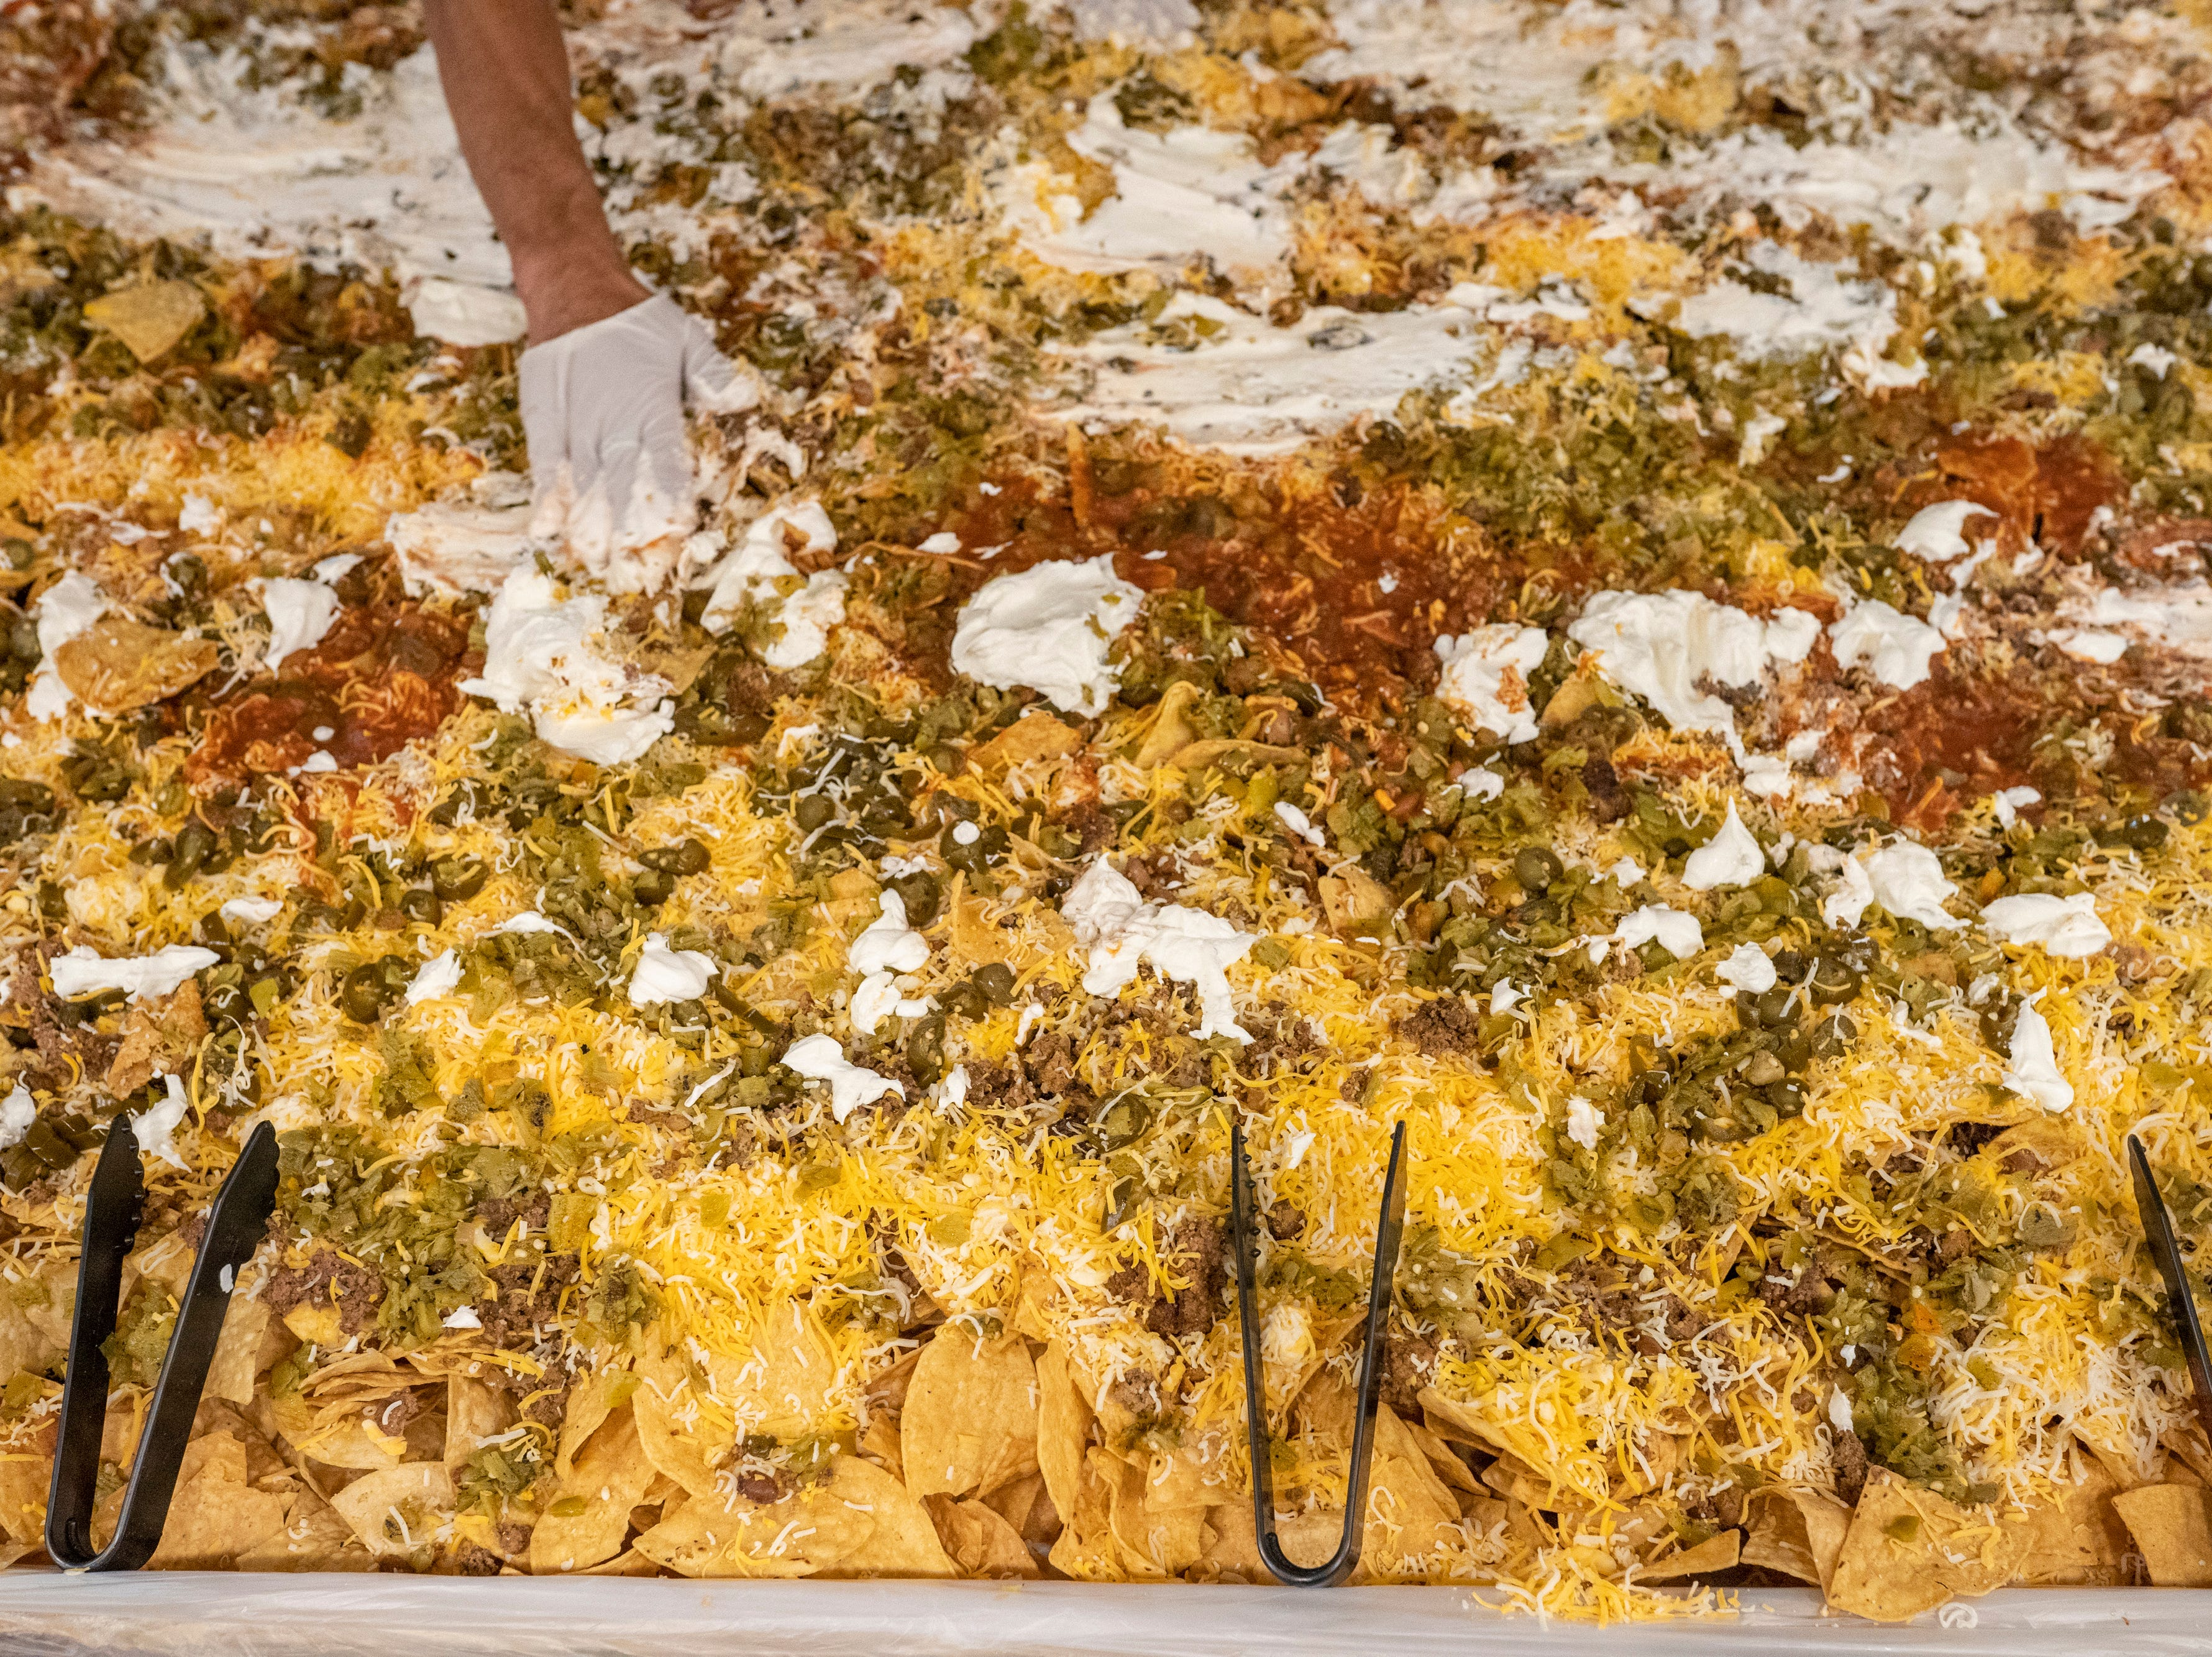 Tongs are placed atop the gigantic pile of nachos, showing visitors the nachos are ready to eat. Las Cruces unofficially set the record for world's largest serving of nachos Saturday, Nov. 10, 2018, in downtown Las Cruces.